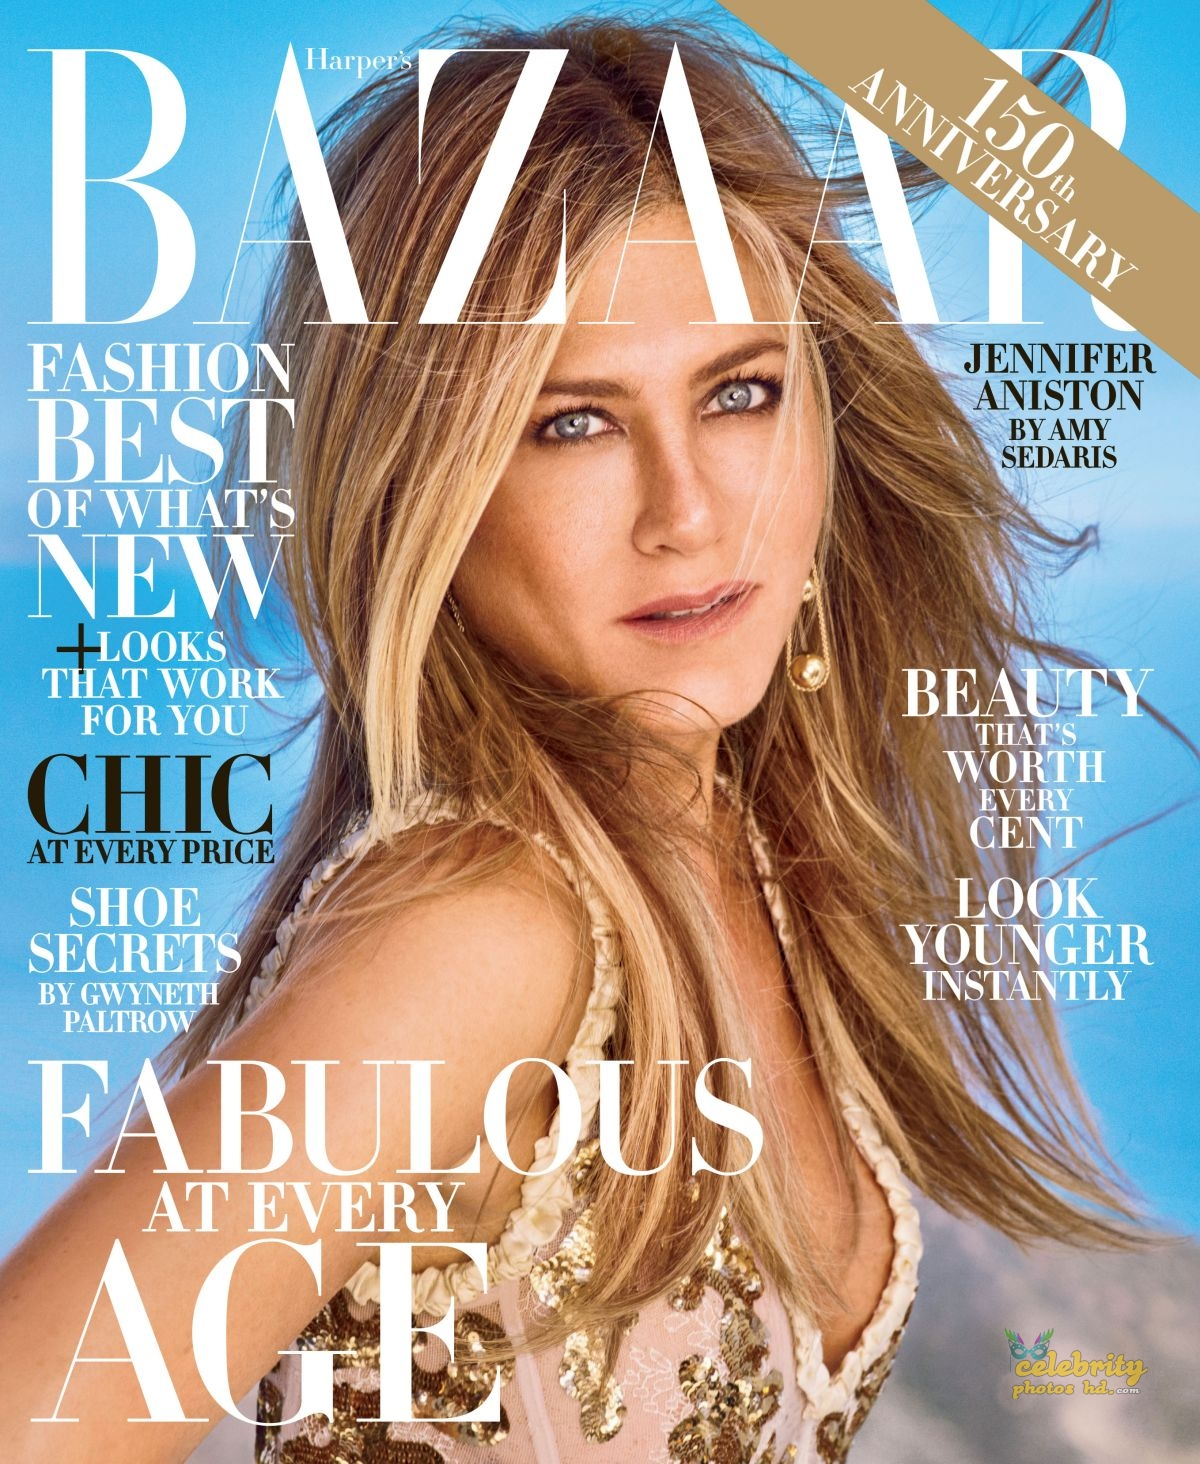 JENNIFER ANISTON for Harper's Bazaar Magazine, (1)